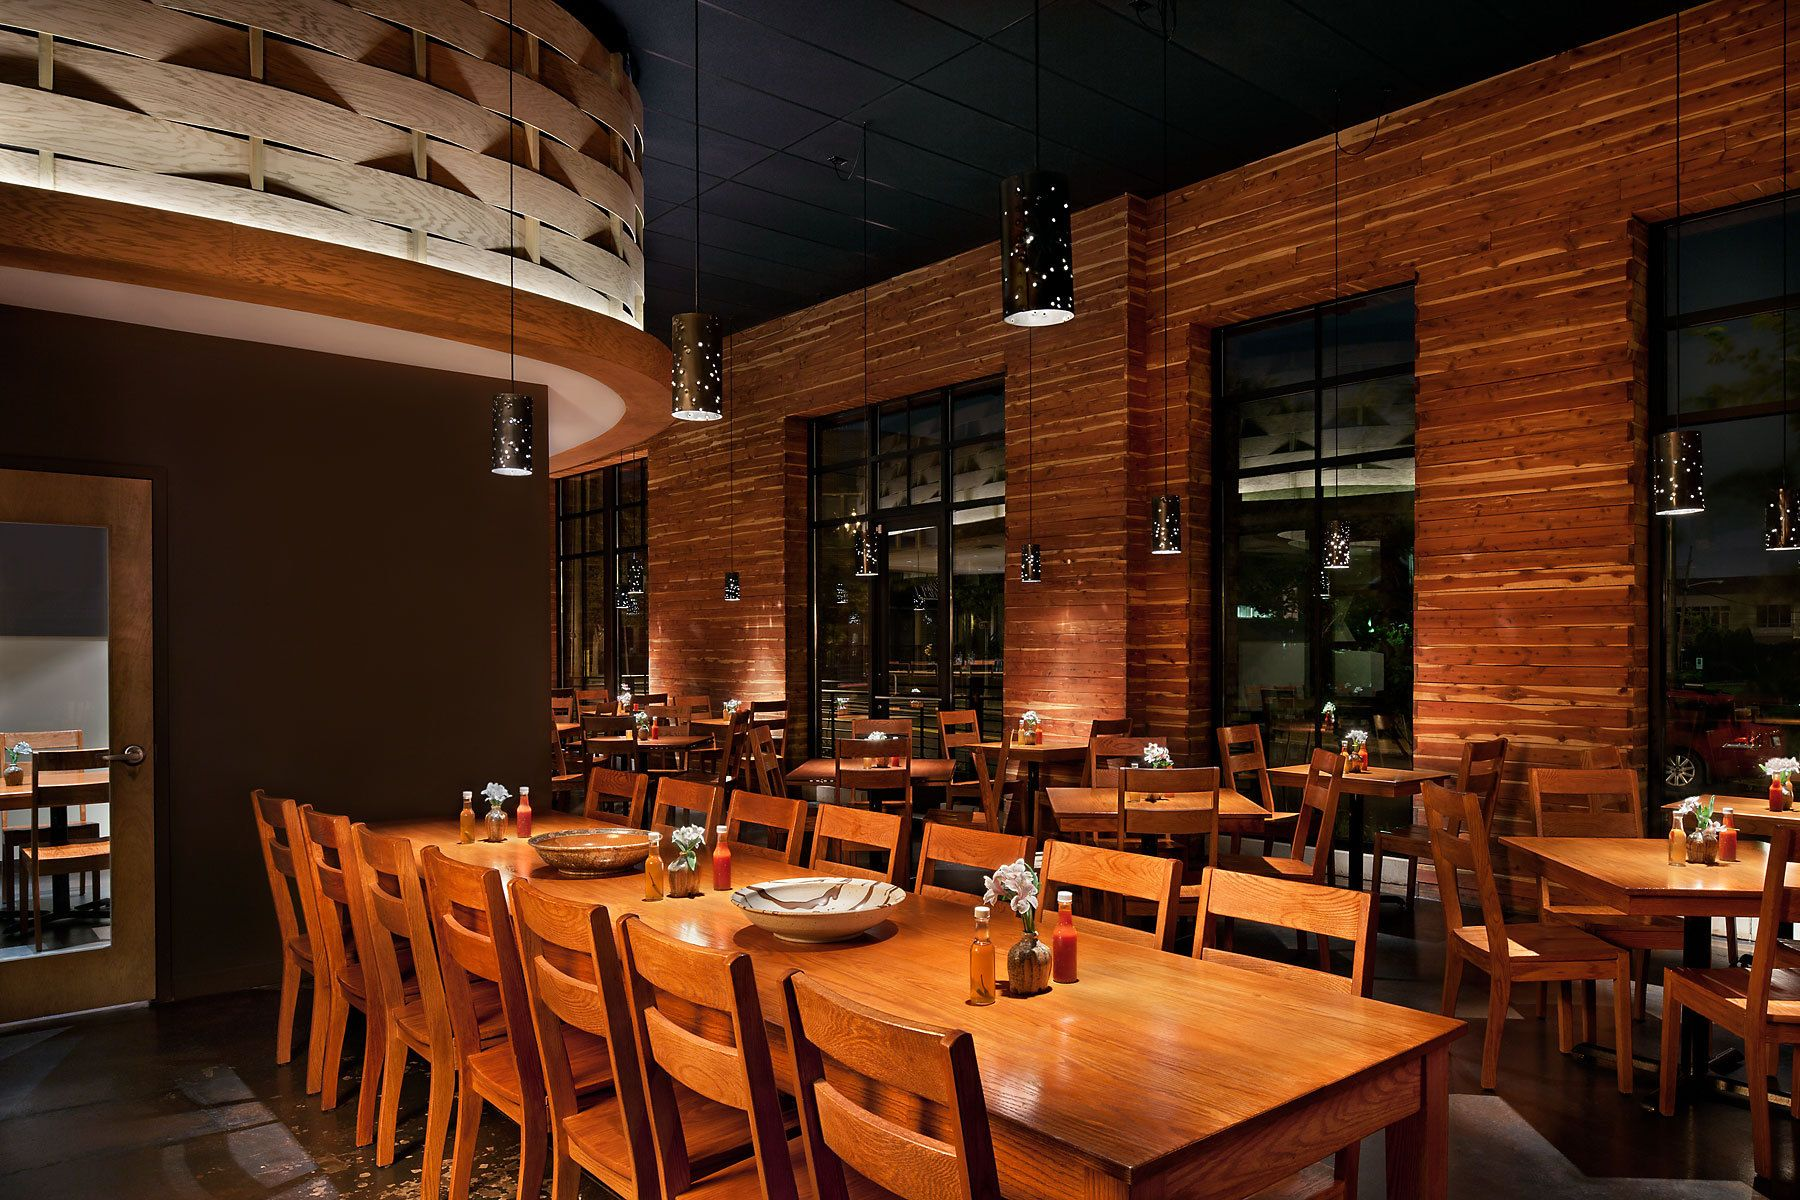 SILO Restaurant in Germantown | Nashville, TNArchitect - Ibañez Architecture